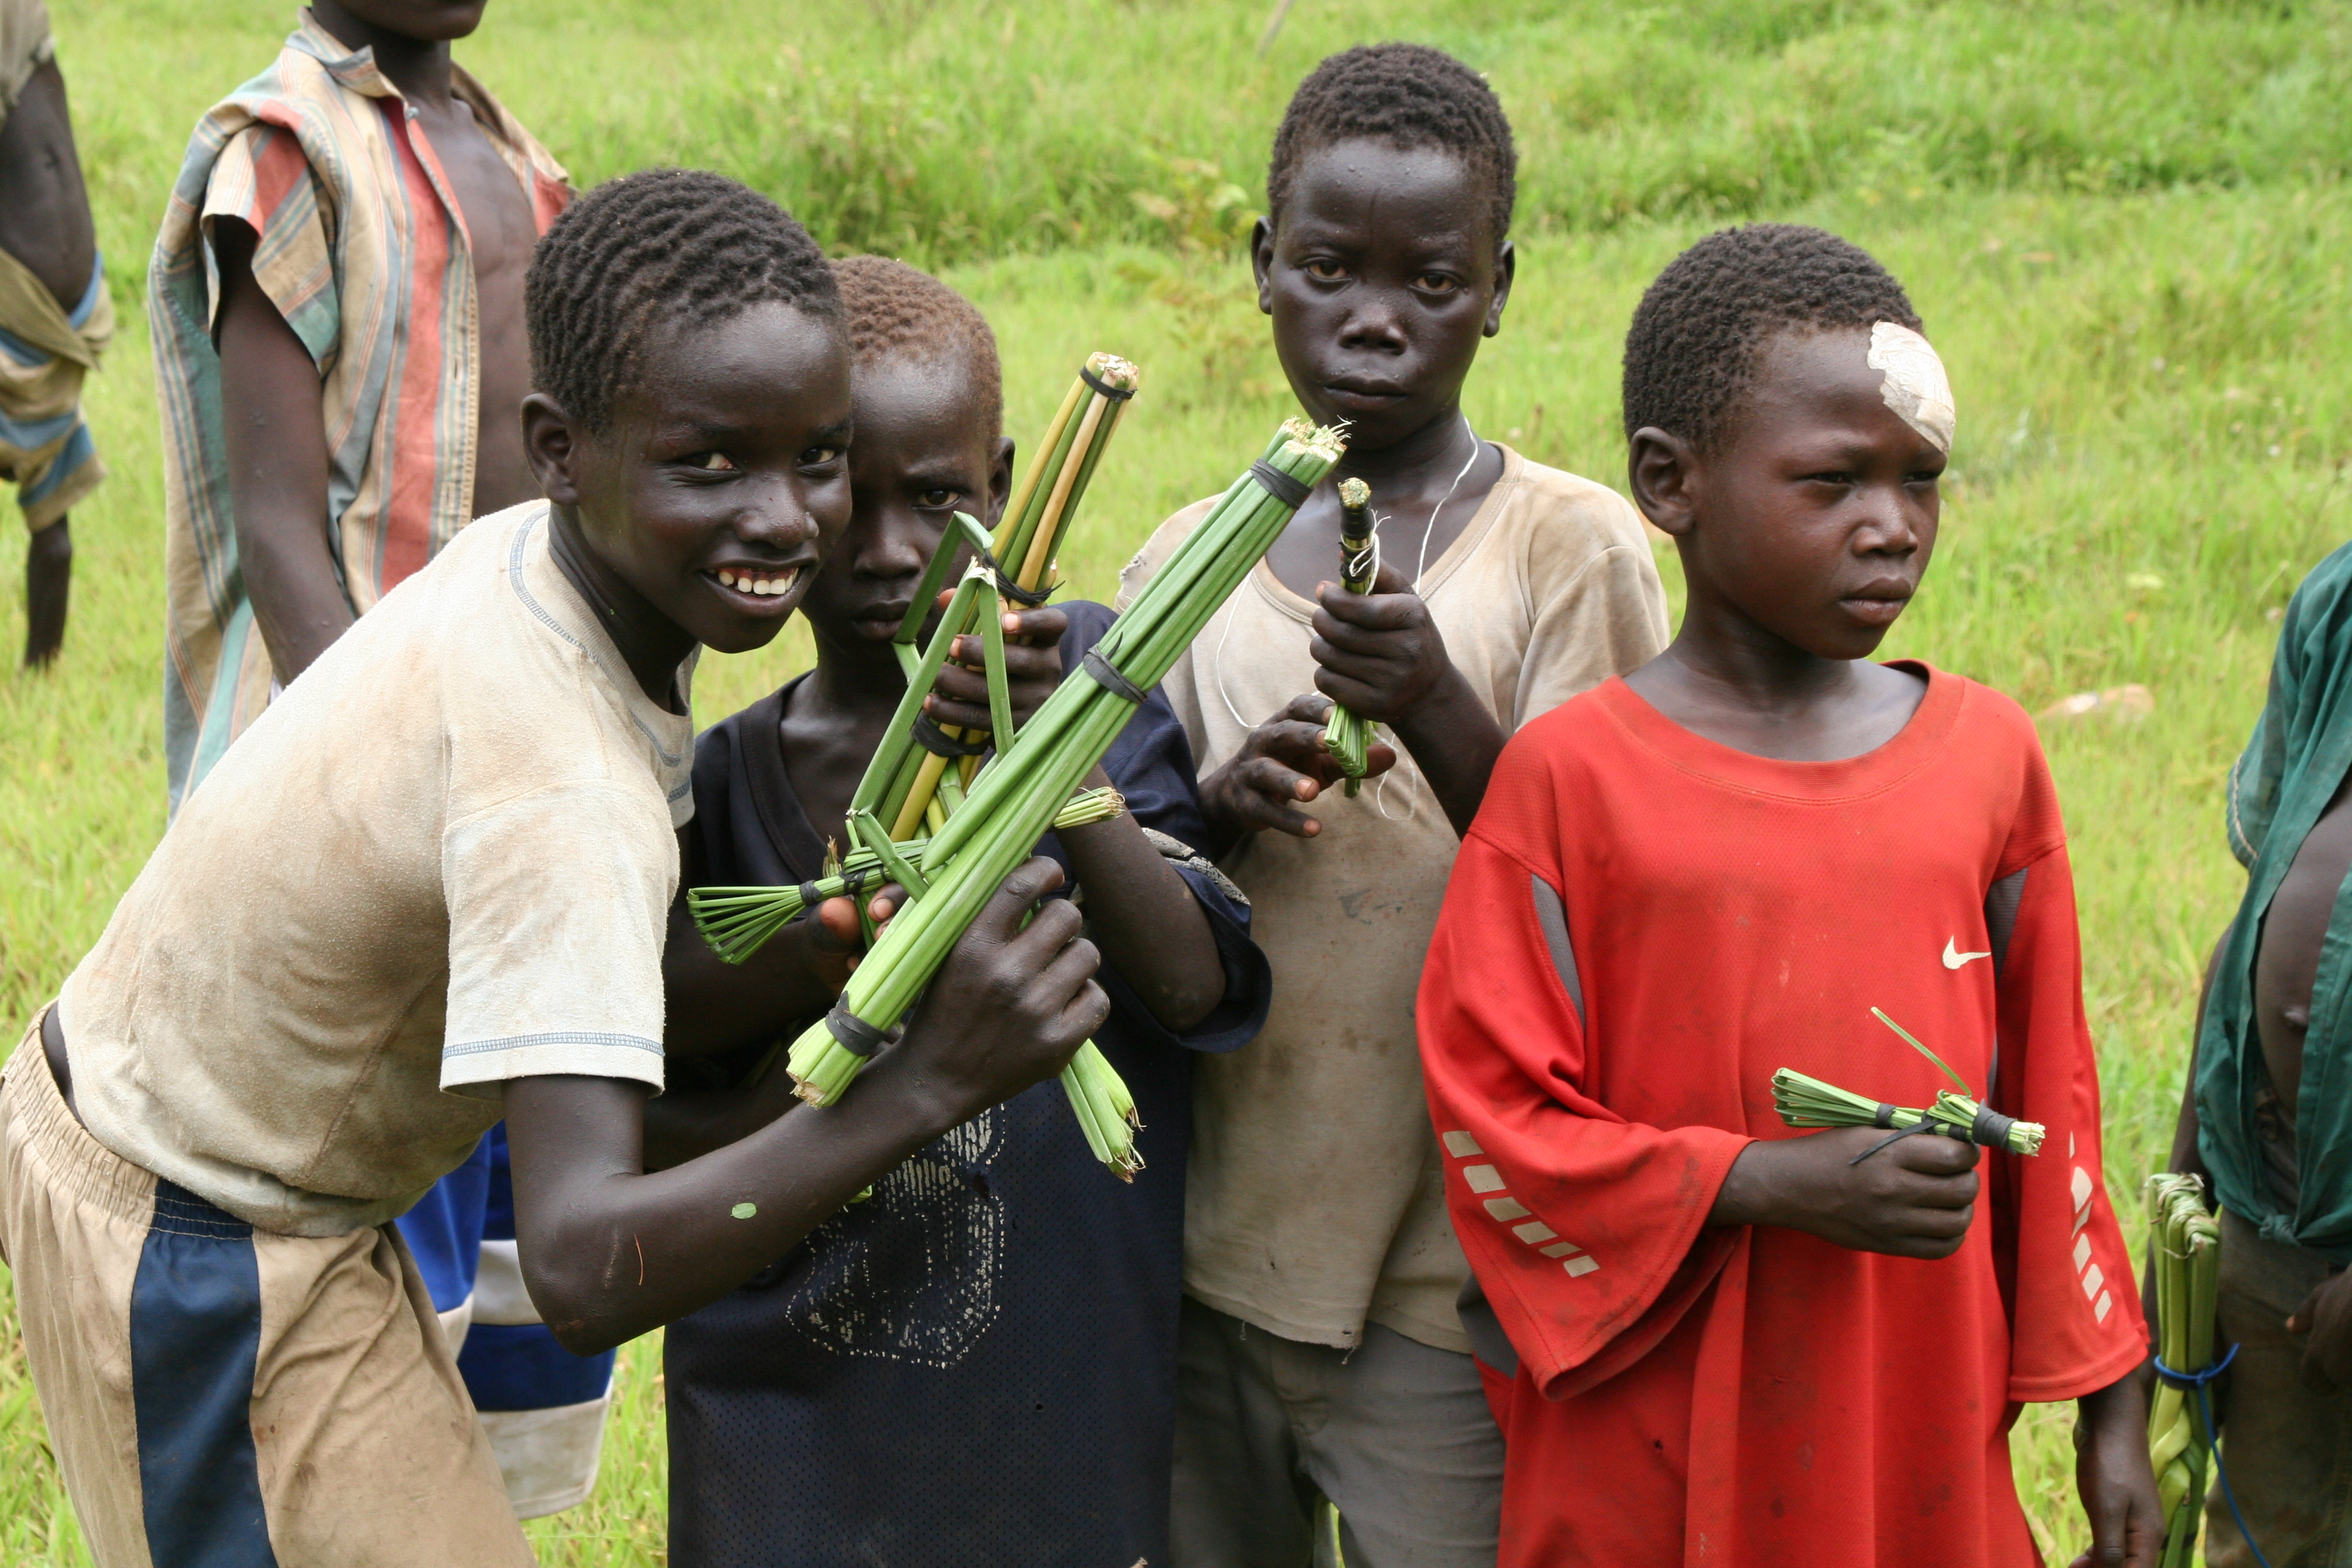 Toy Guns For Boys : Boys with toy guns inroadsjournal